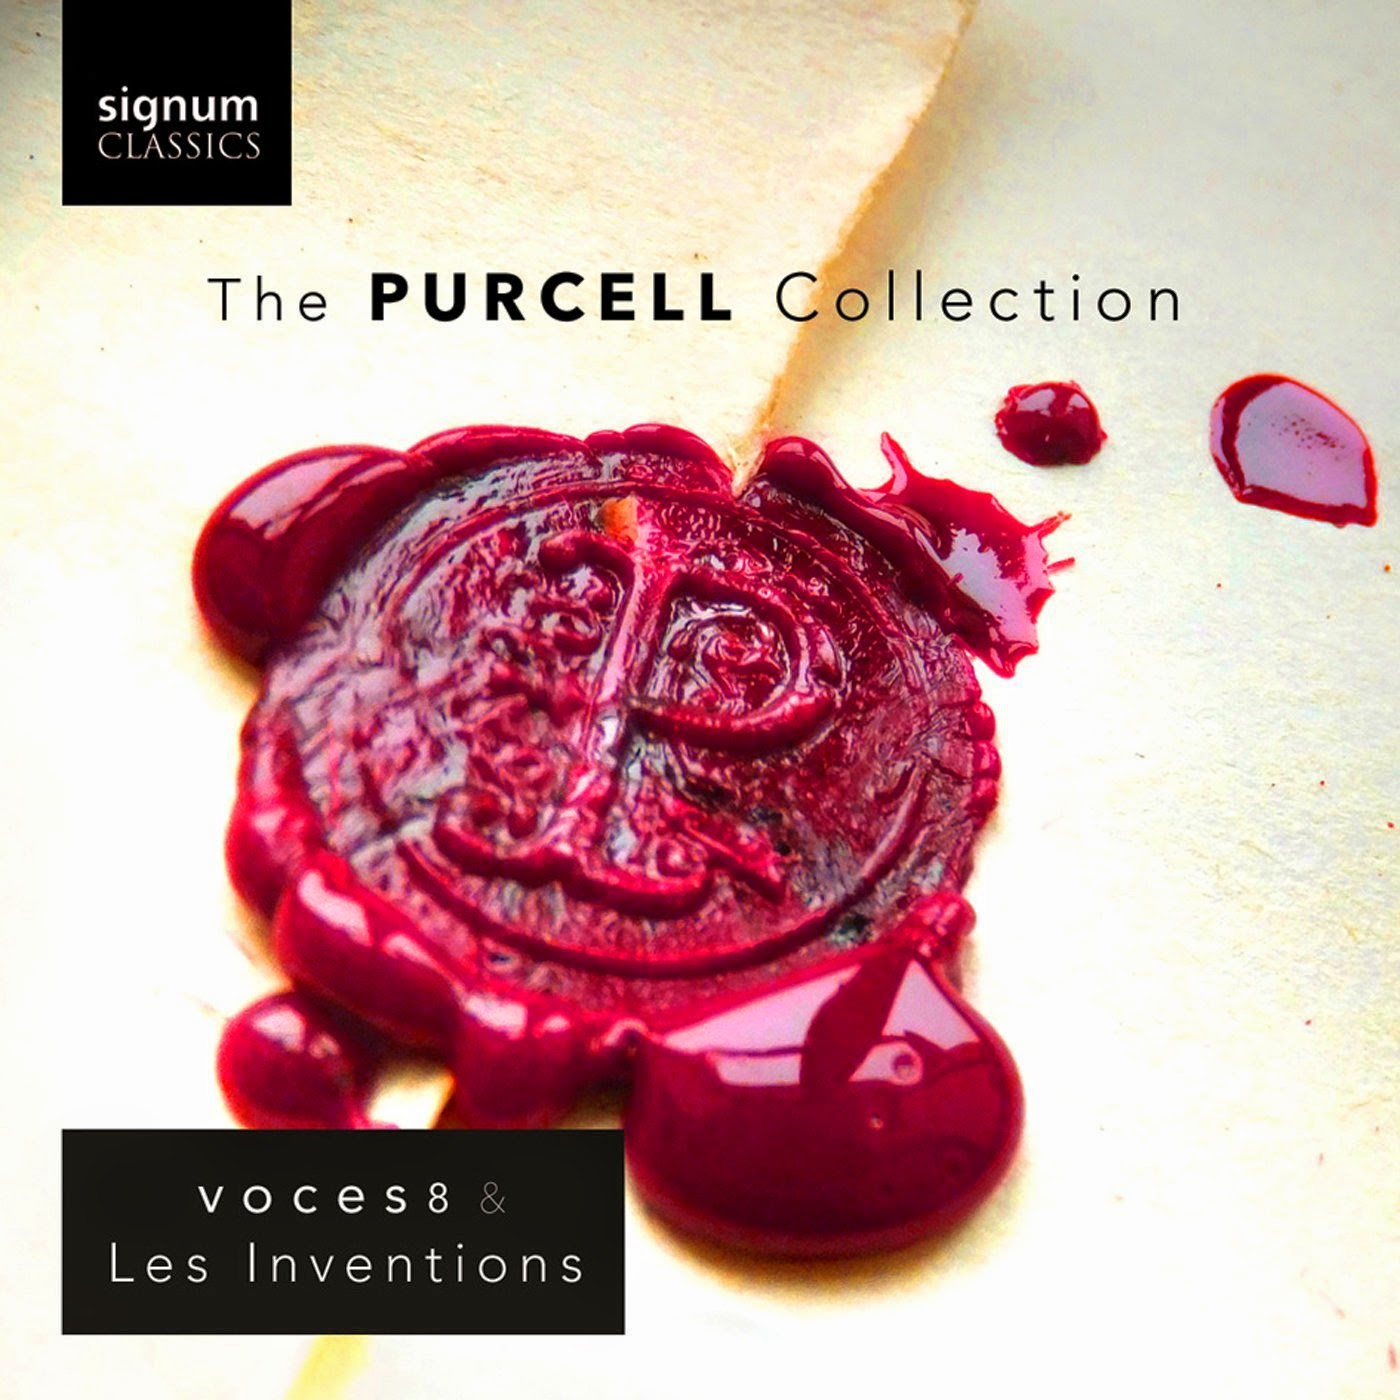 Voces8 - The Purcell Collection - SIGCD375